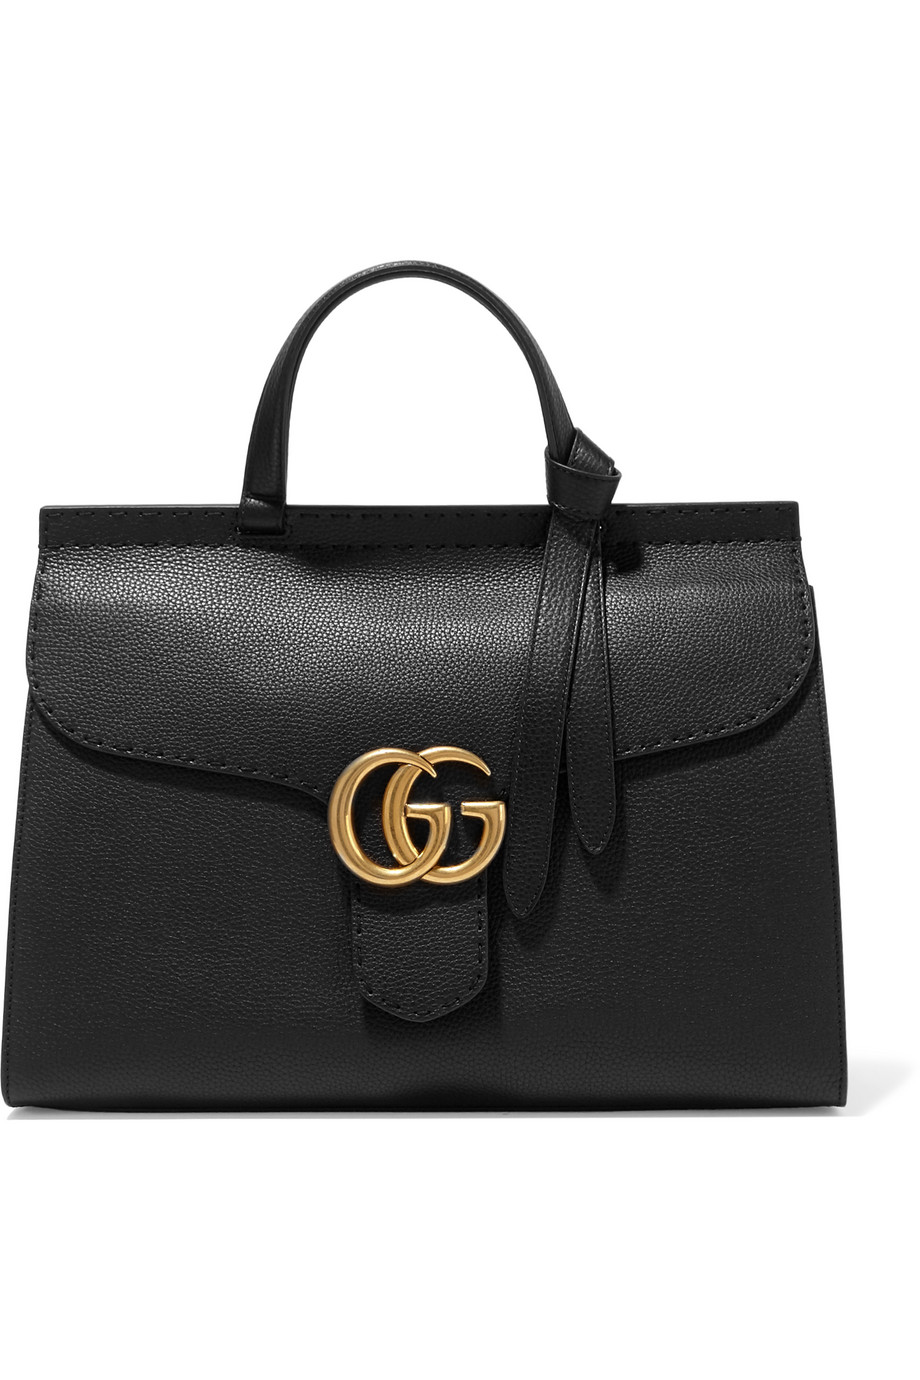 Gucci GG Marmont Textured-Leather Tote, Black, Women's